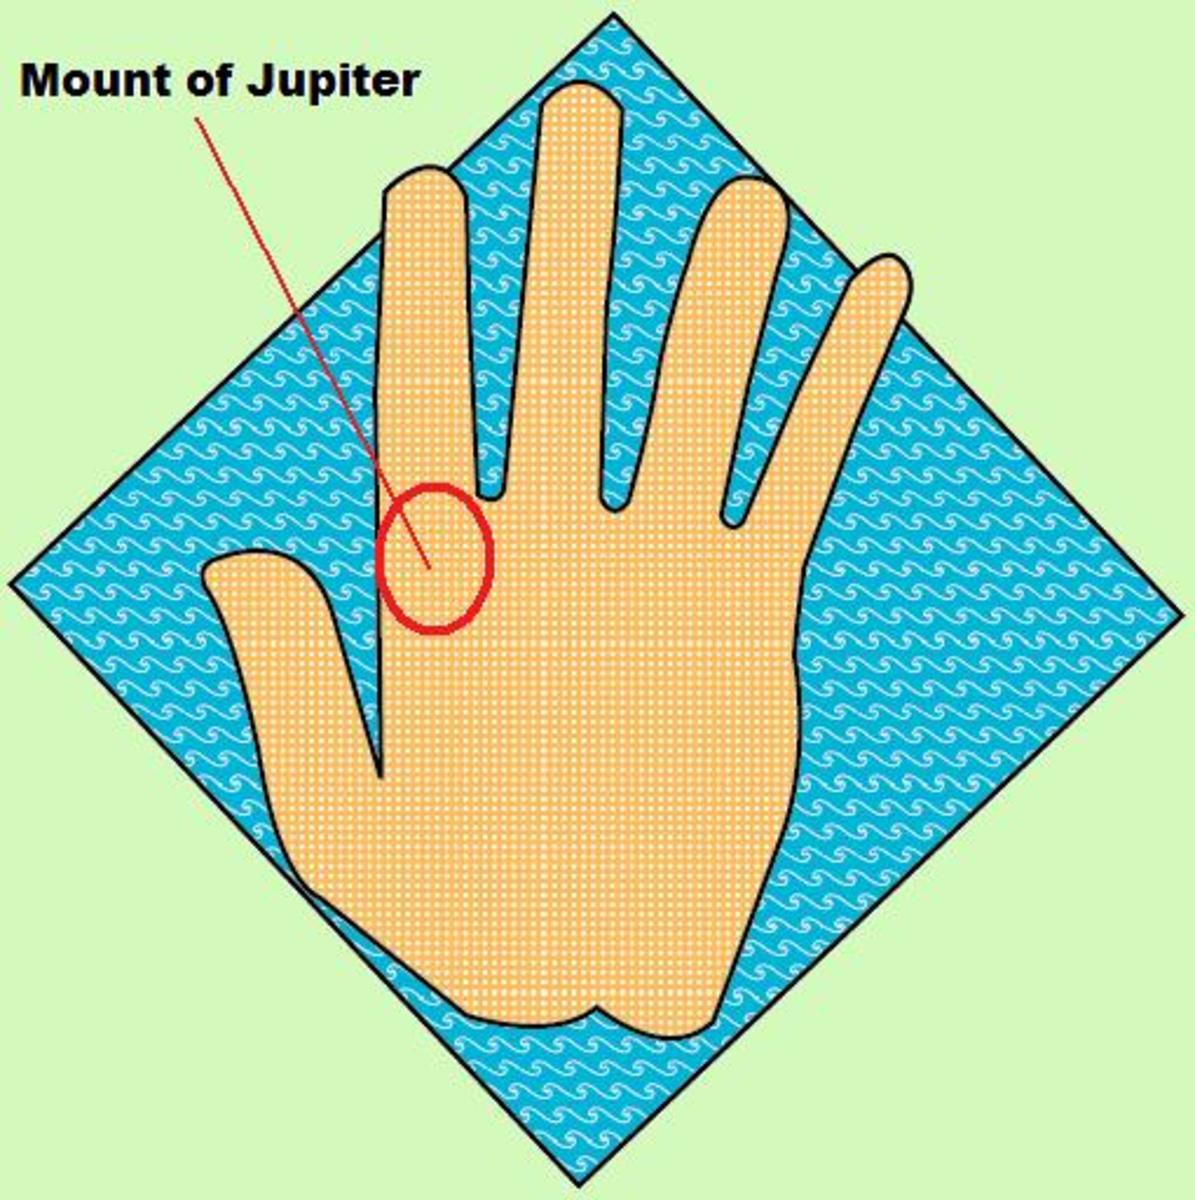 Significance and Meanings of Mounts in Palmistry